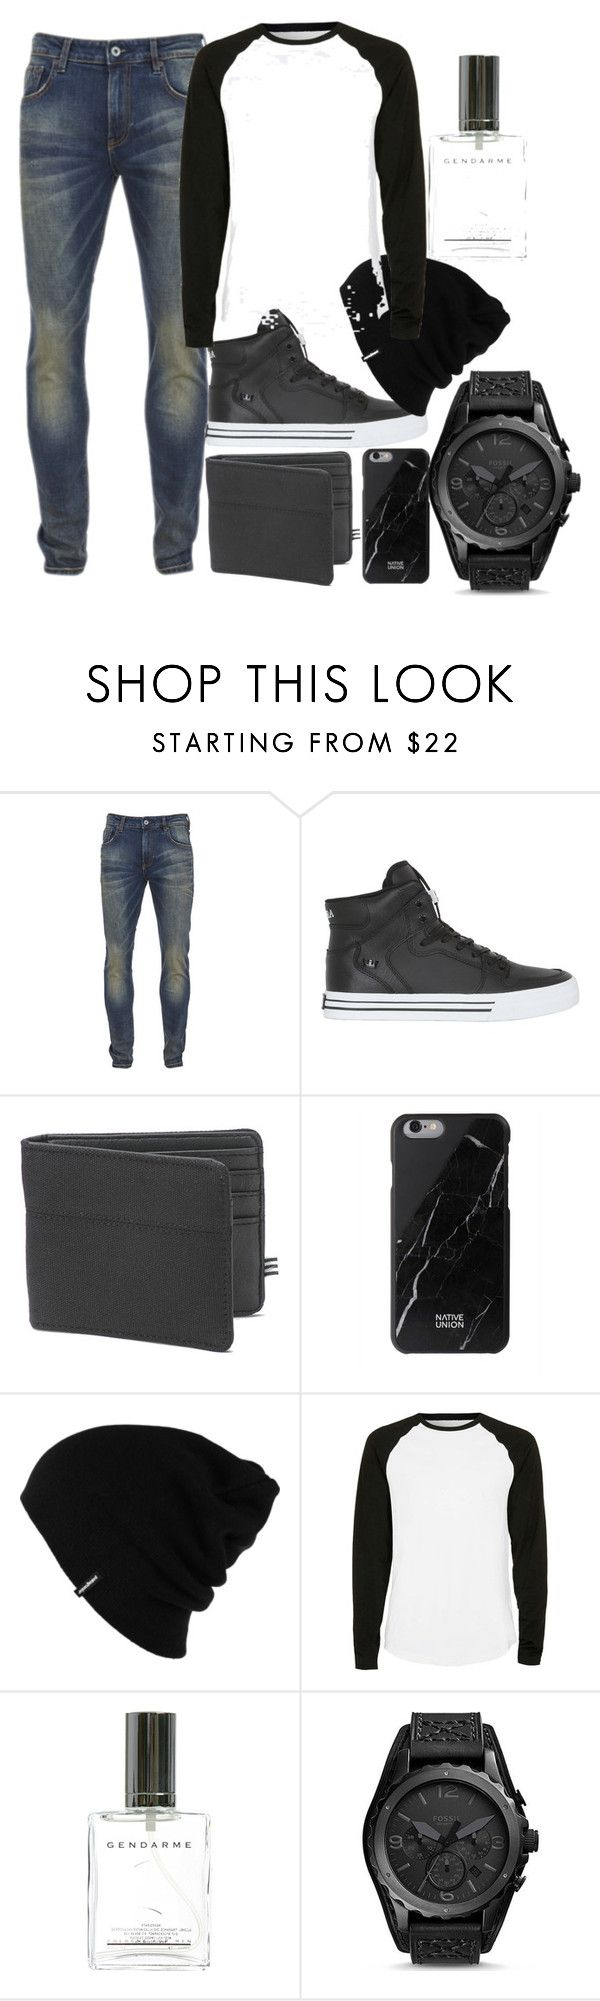 """Men outfit"" by fashion-is-passion23 ❤ liked on Polyvore featuring Scotch & Soda, Supra, 1 Voice, Native Union, Patagonia, Topman, FOSSIL, men's fashion and menswear"